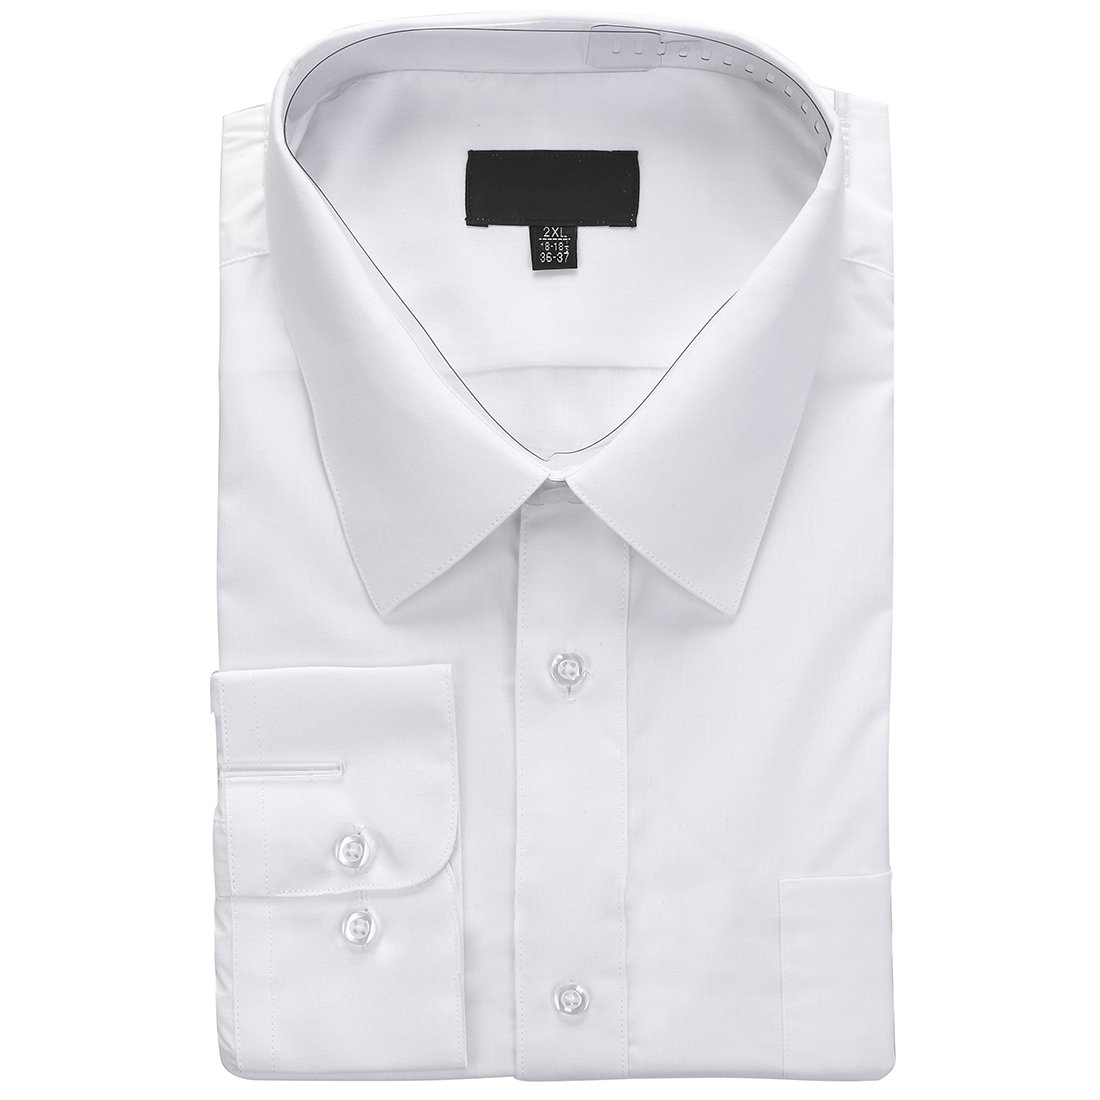 Men's business casual solid long sleeve dress shirts, White, M